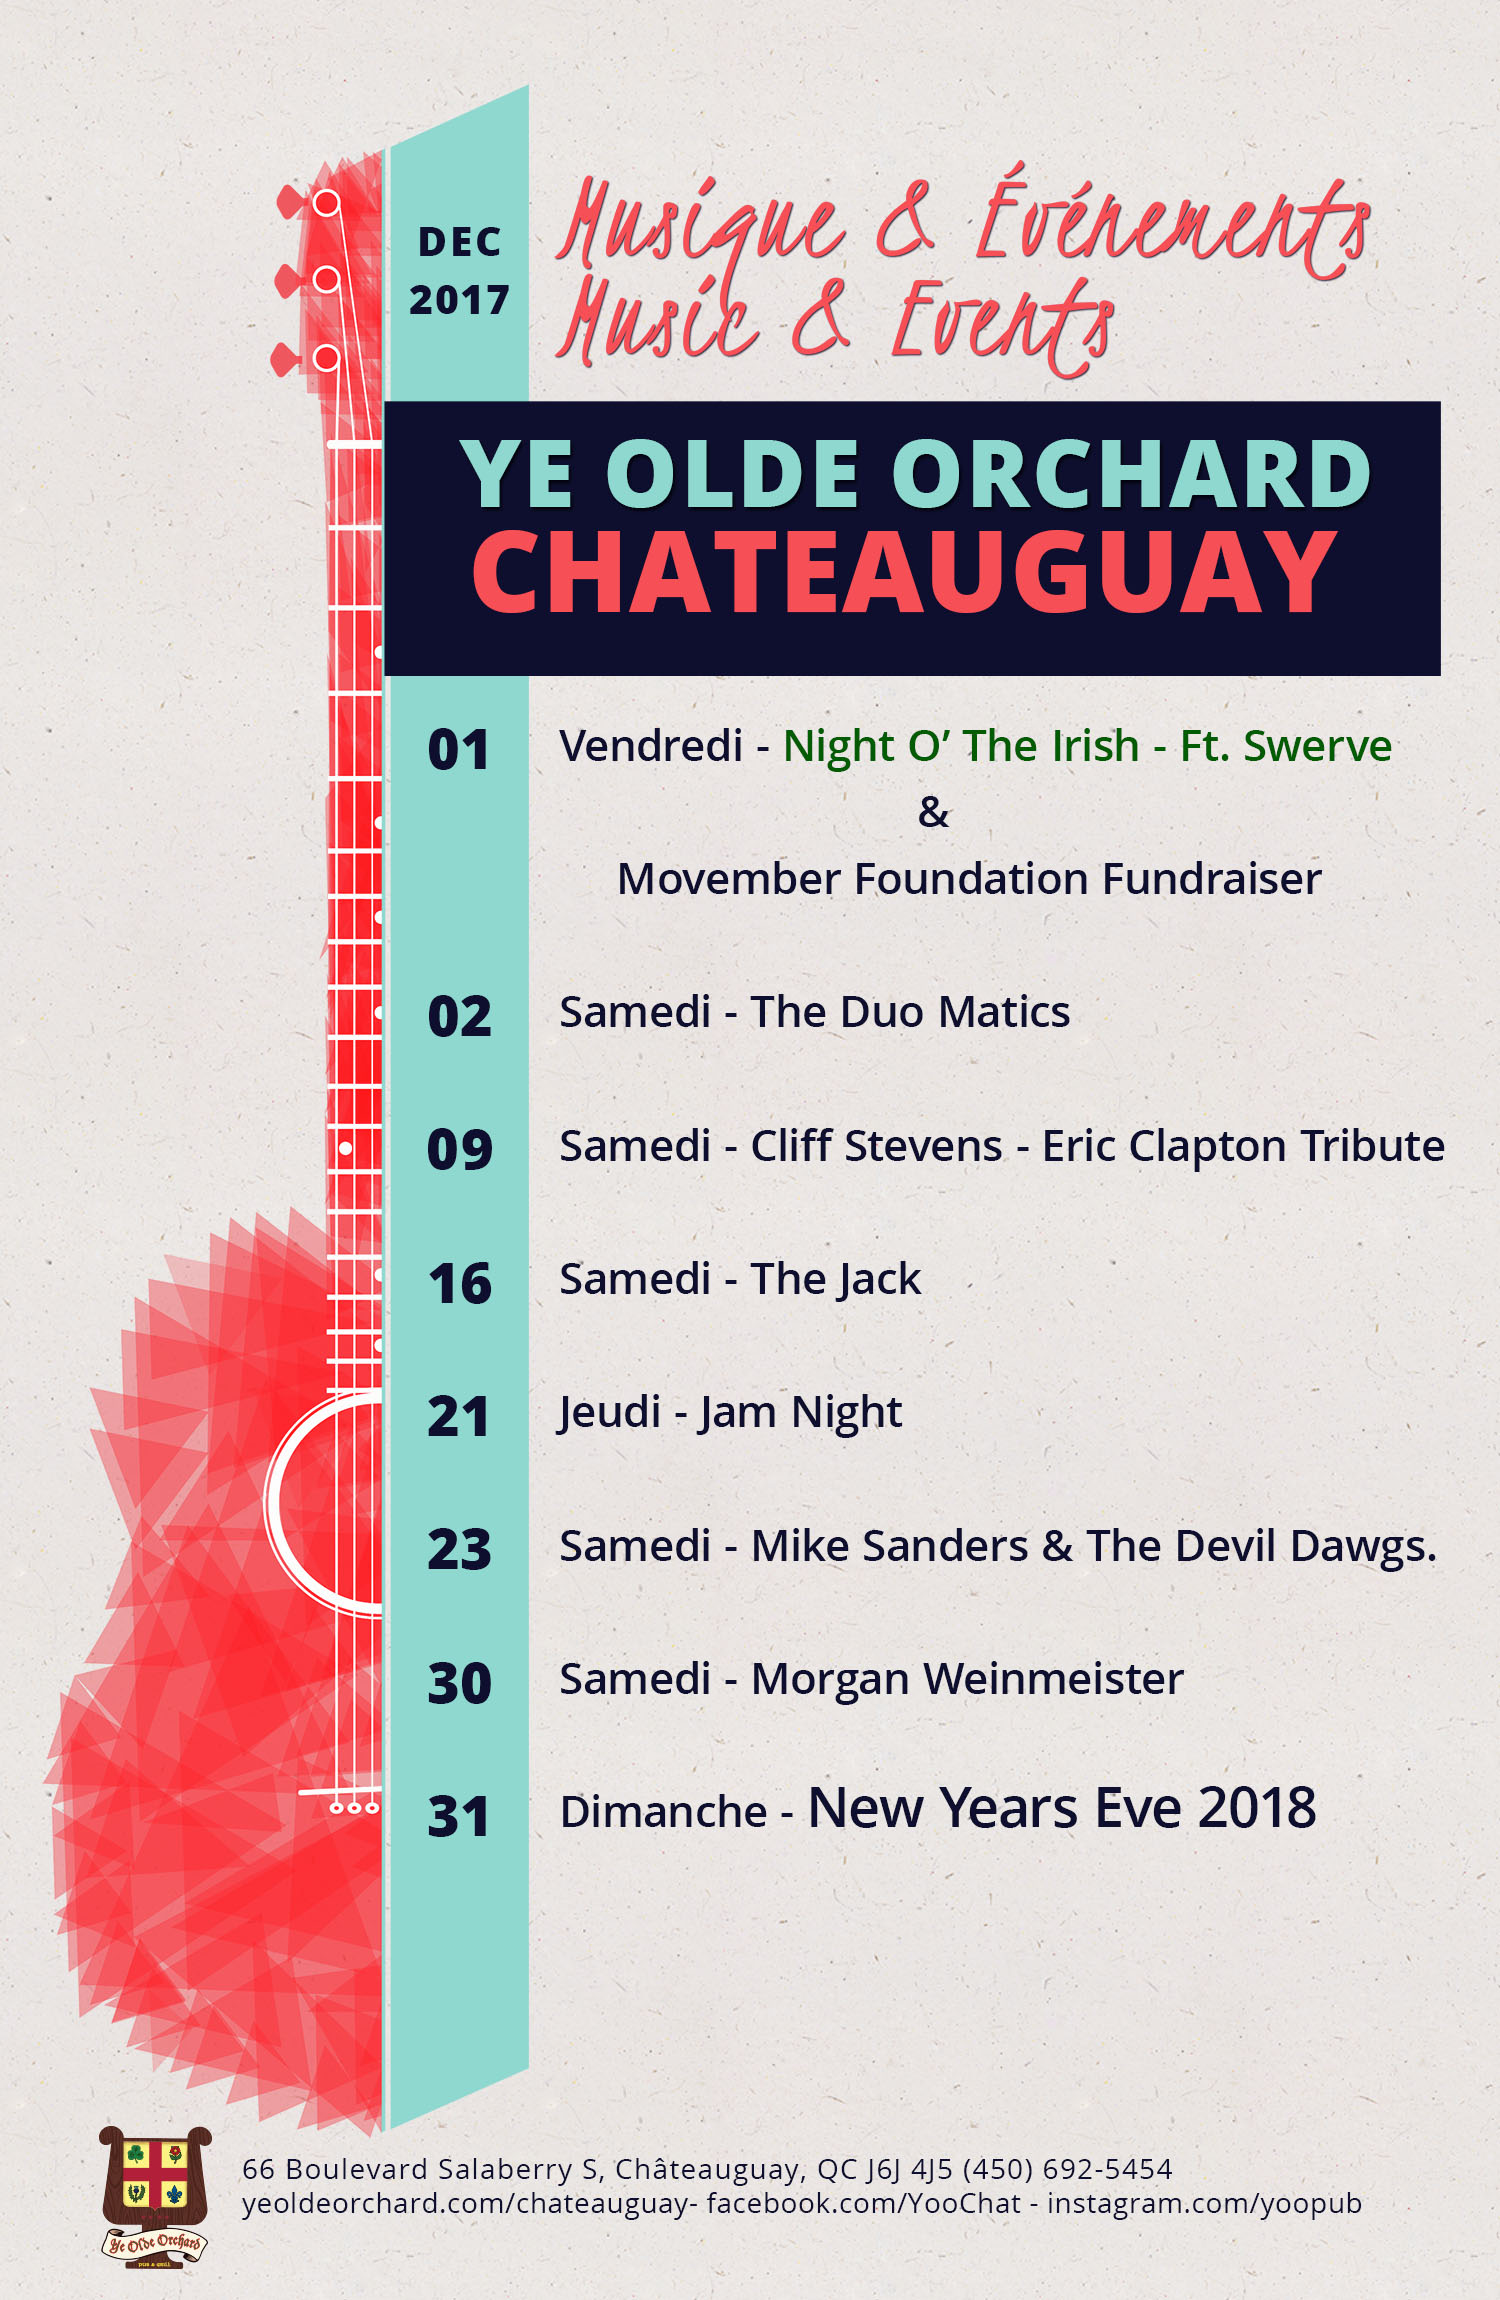 ye-olde-orchard-pub-music-and-events-calendar-Chateauguay-DEC-WEB